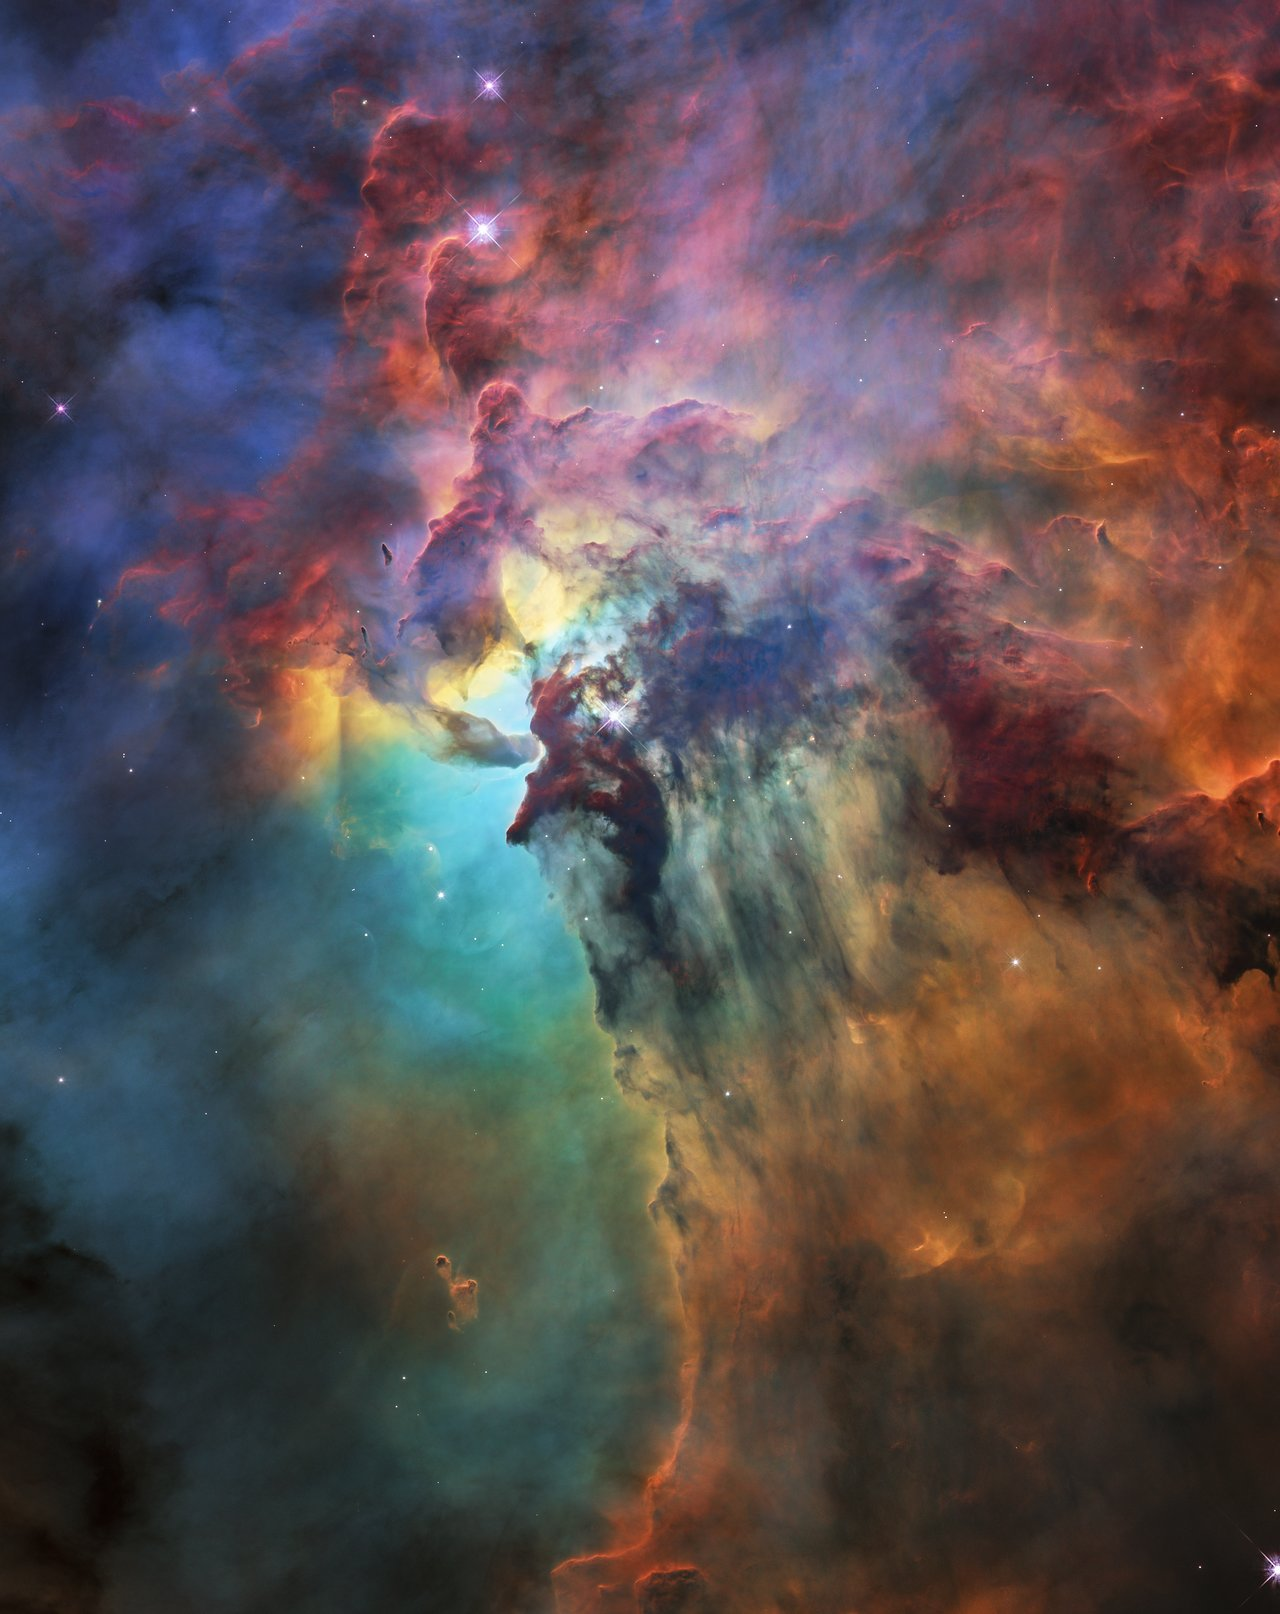 Photo Release: Hubble celebrates 28th anniversary with a trip through the Lagoon Nebula